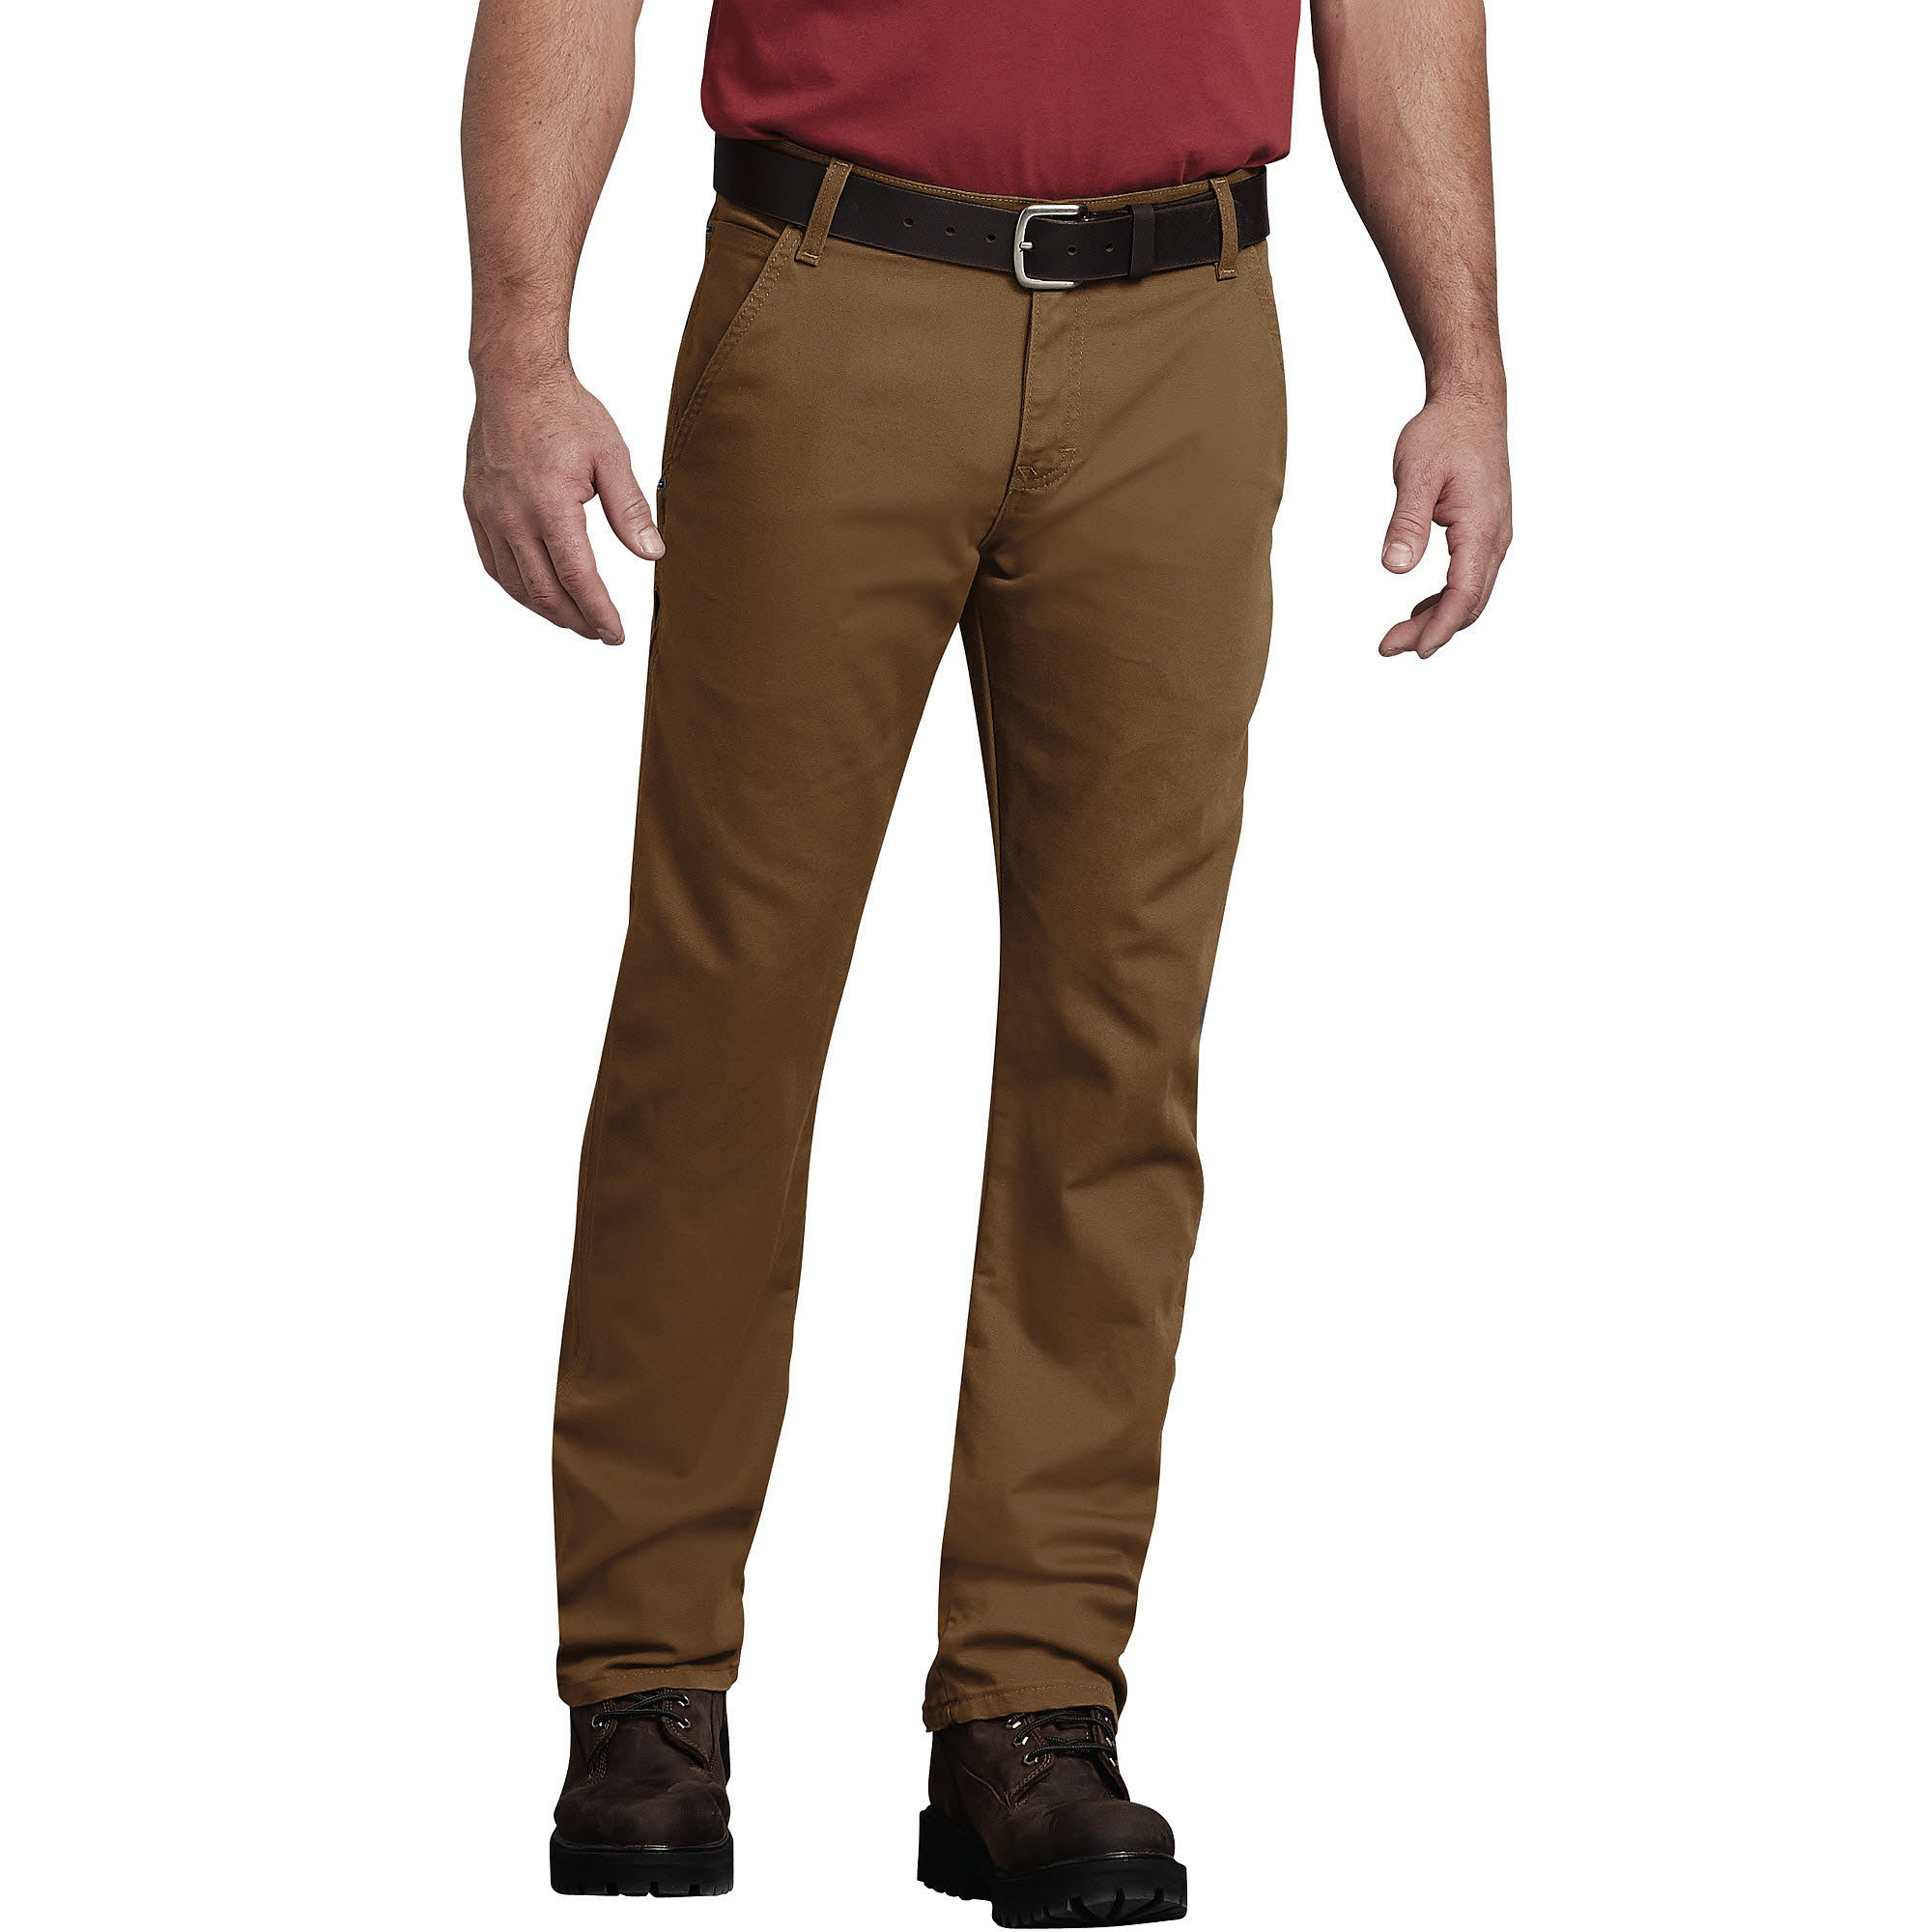 'Dickies' Flex Regular Fit Straight Leg Tough Max™ Duck Carpenter Pants - Stonewashed Brown Duck